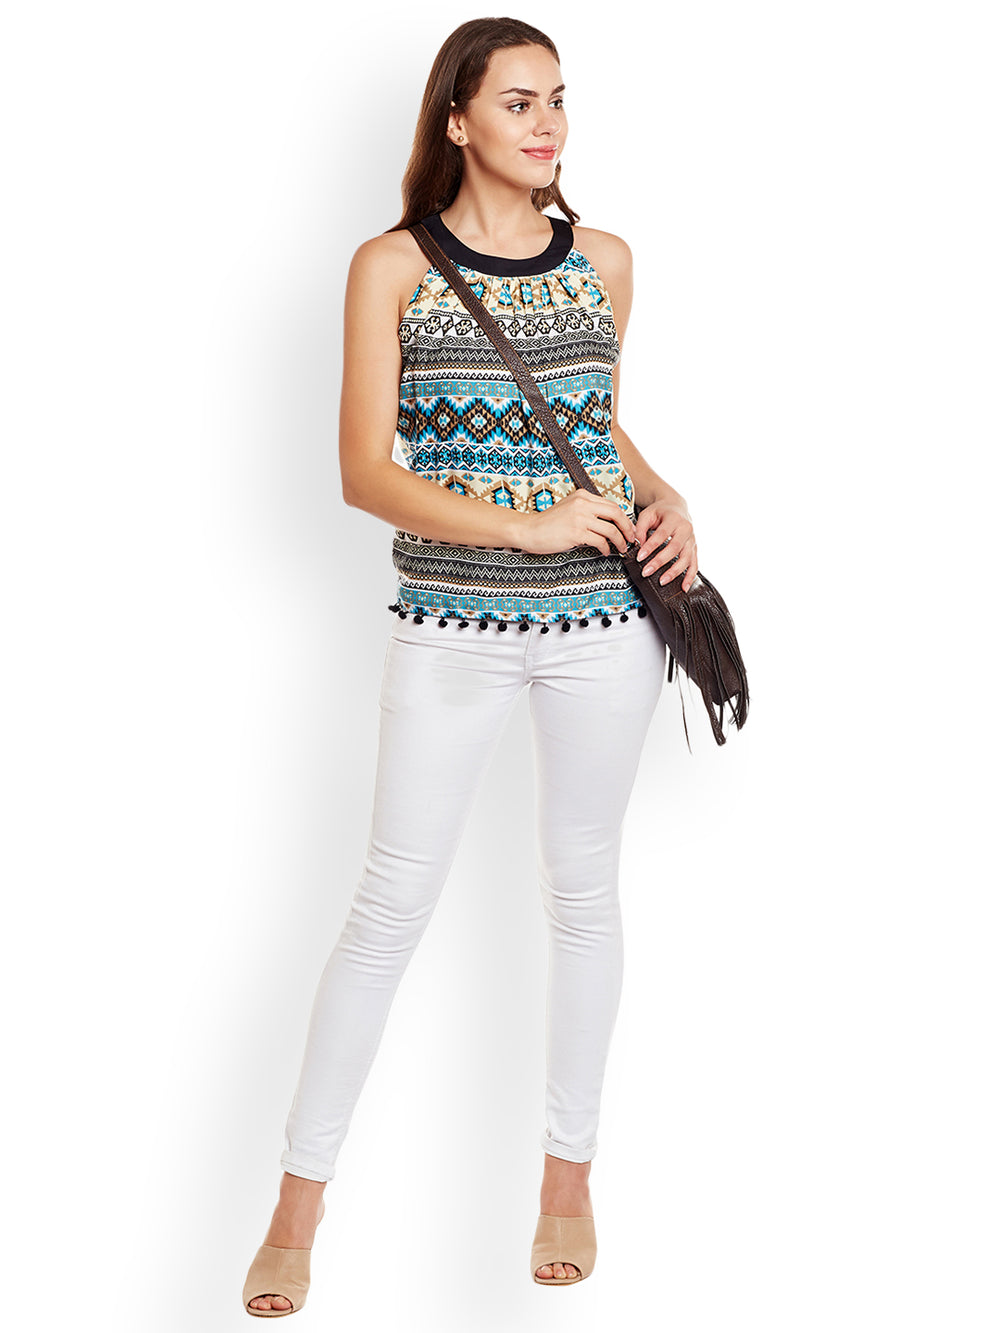 eyelet Women Multicoloured Printed Top